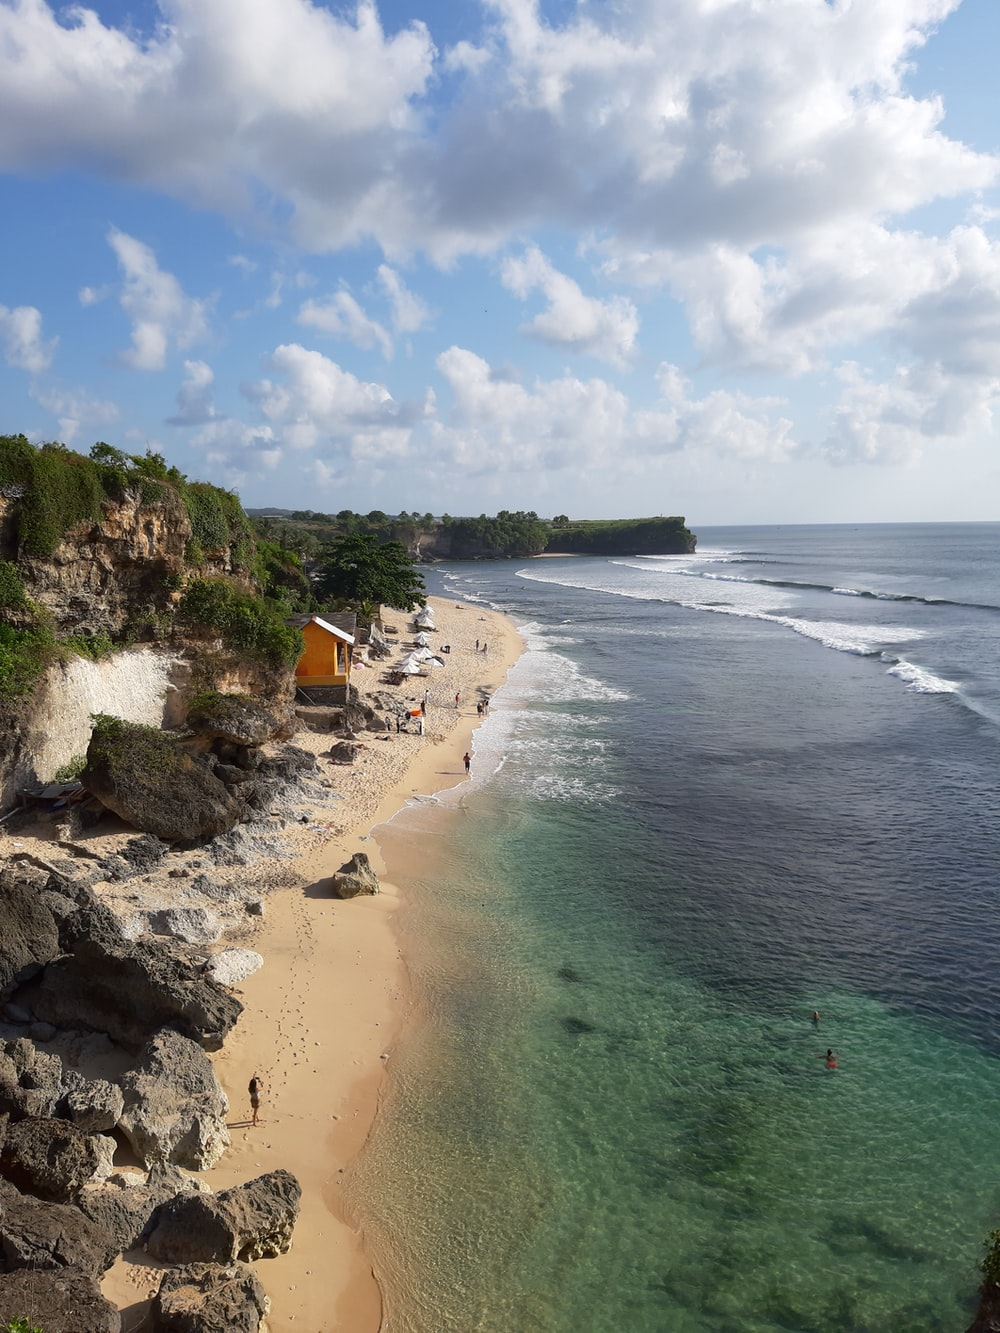 Kuta Beach Bali Indonesia Pictures Download Free Images